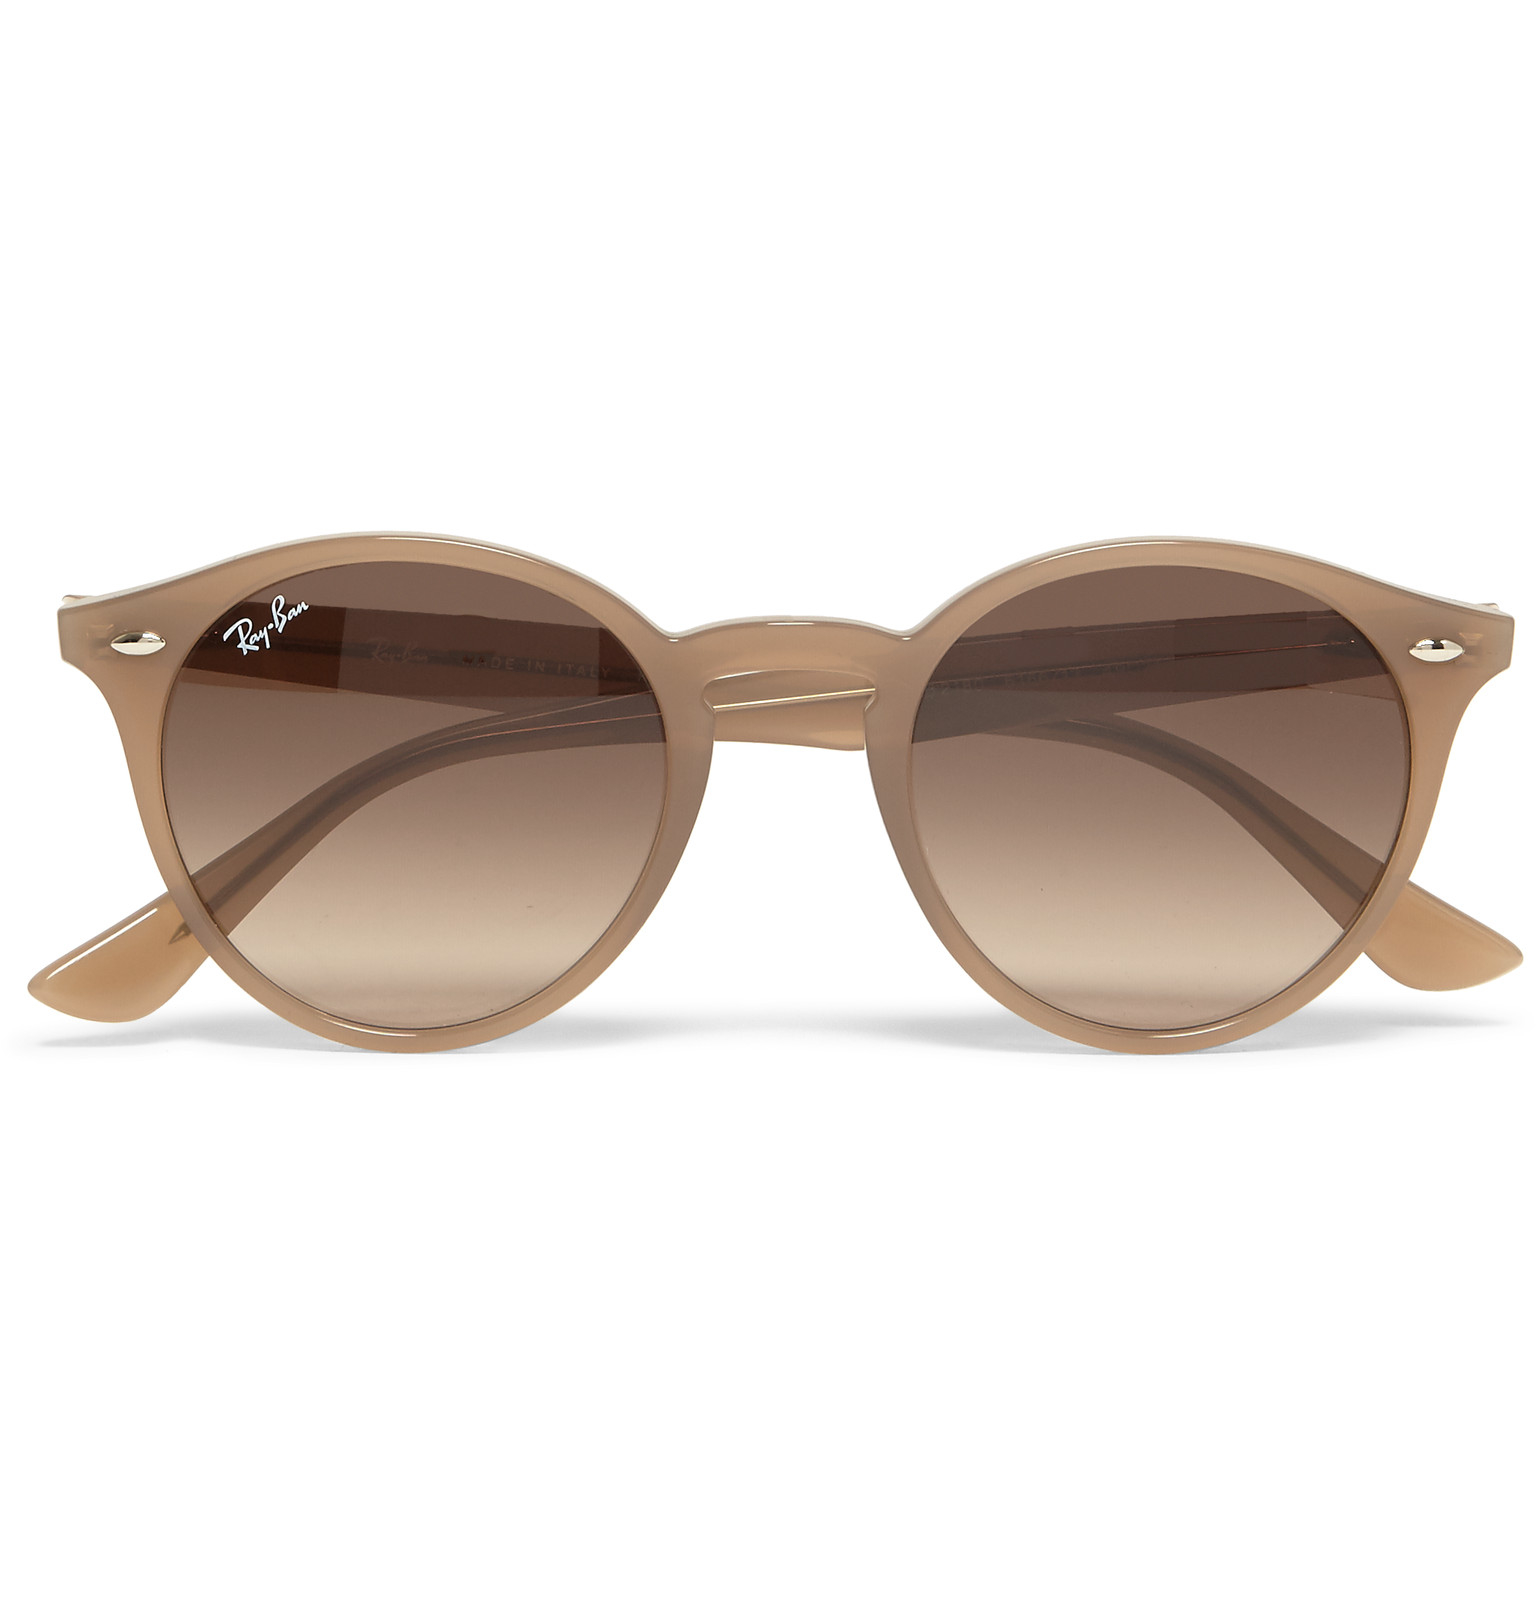 Ray-Ban Round-frame Acetate Sunglasses in Natural for Men - Lyst